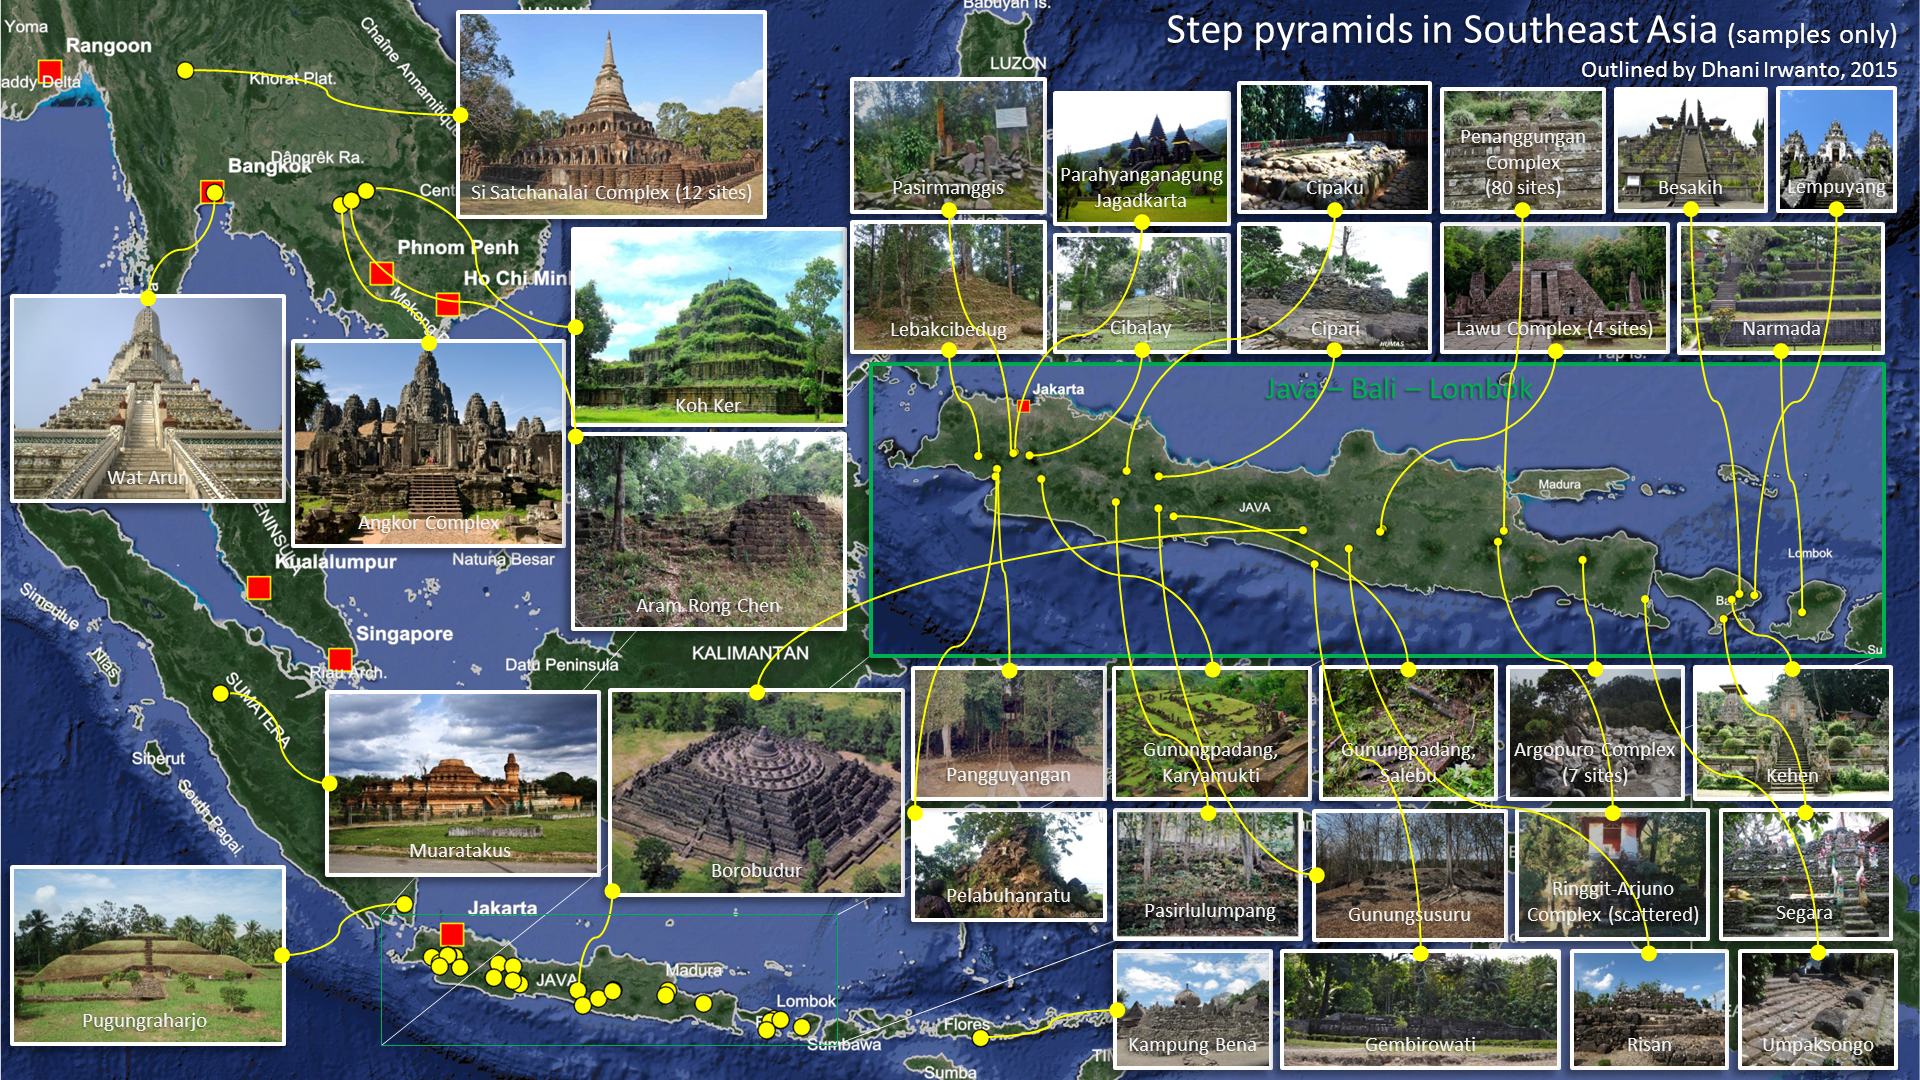 Step Pyramids in Southeast Asia